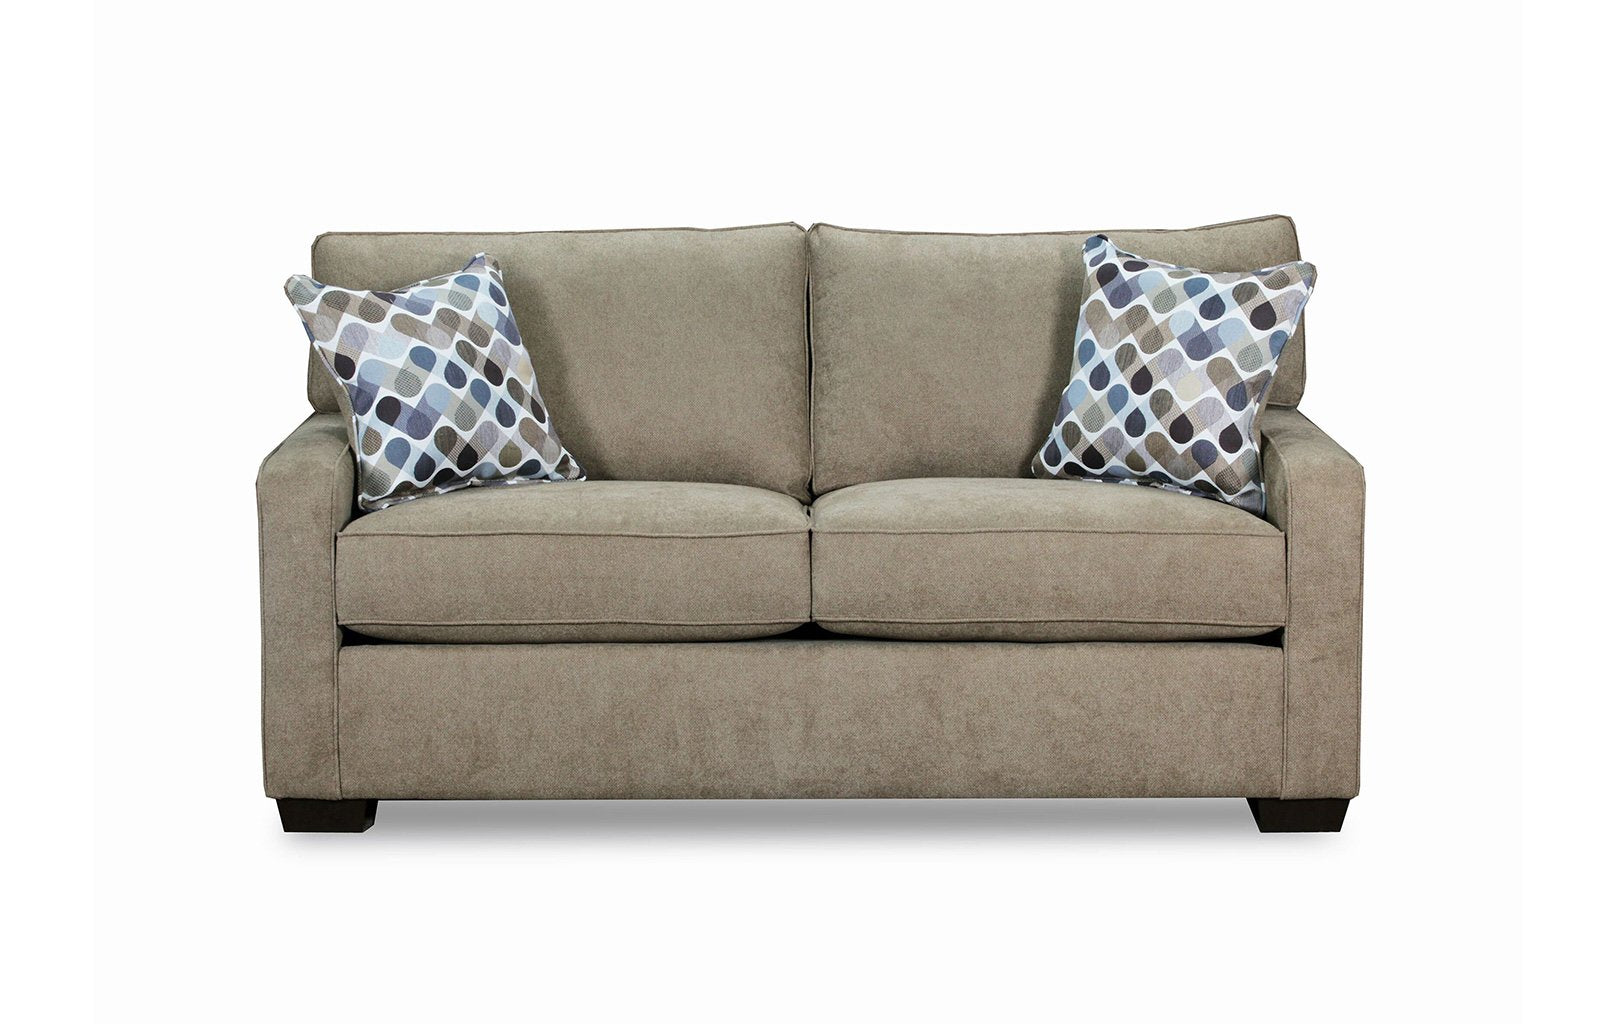 Brittany Sleeper Loveseat